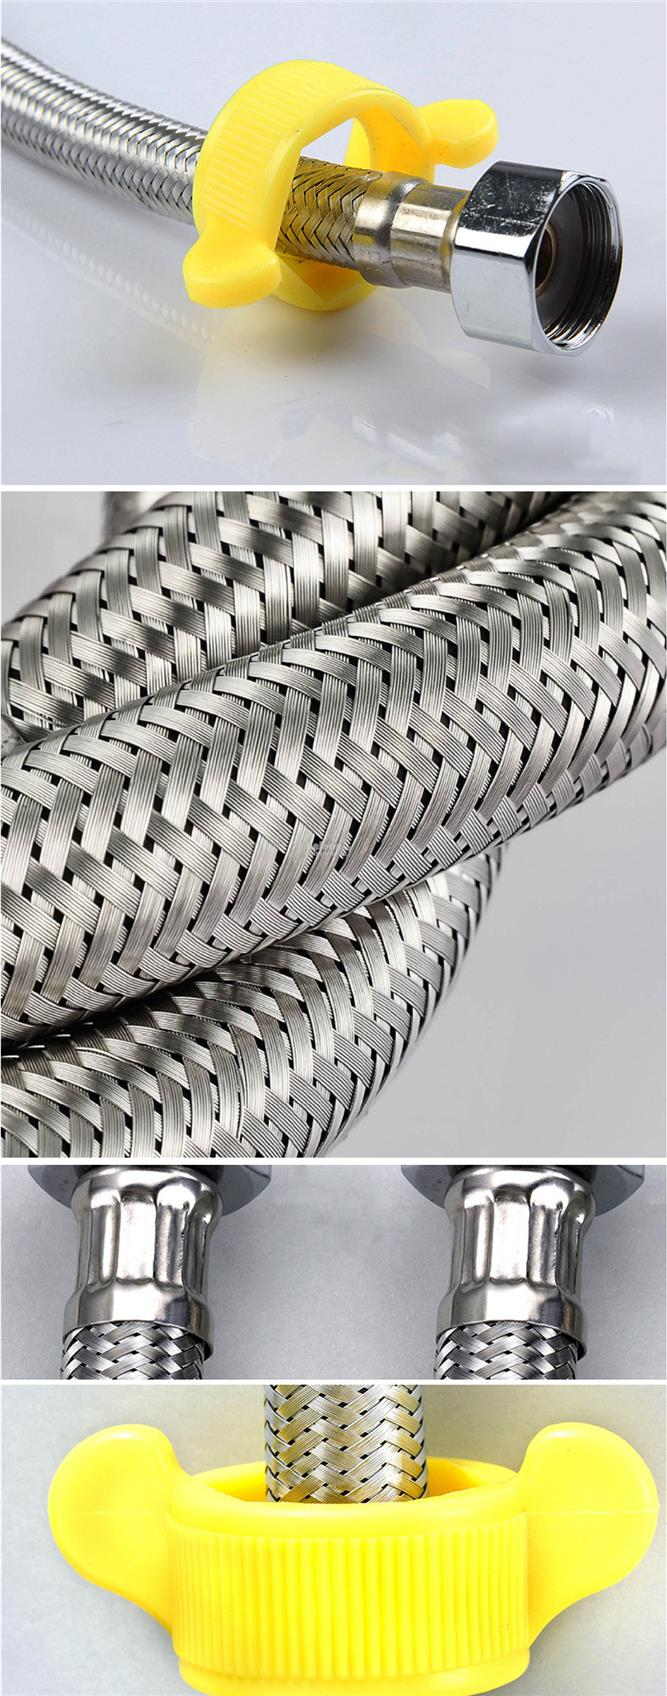 150cm 1.5m Stainless Steel High Pressure Flexible Water Hose